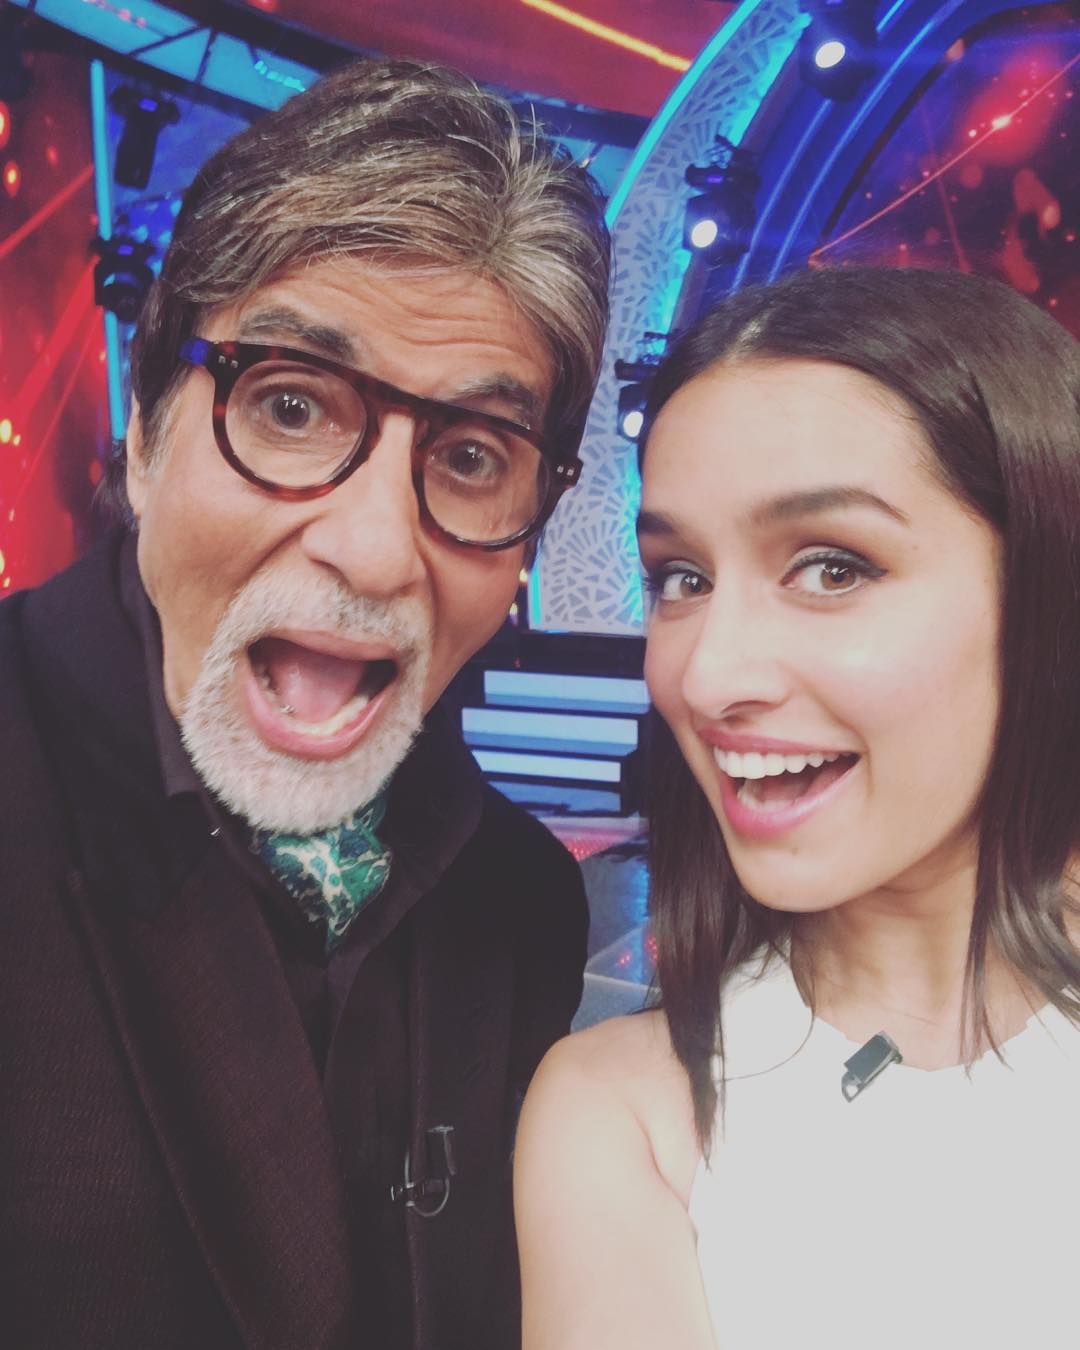 This one is with Amitabh Bachchan - Seriously Shraddha got him clicking too.